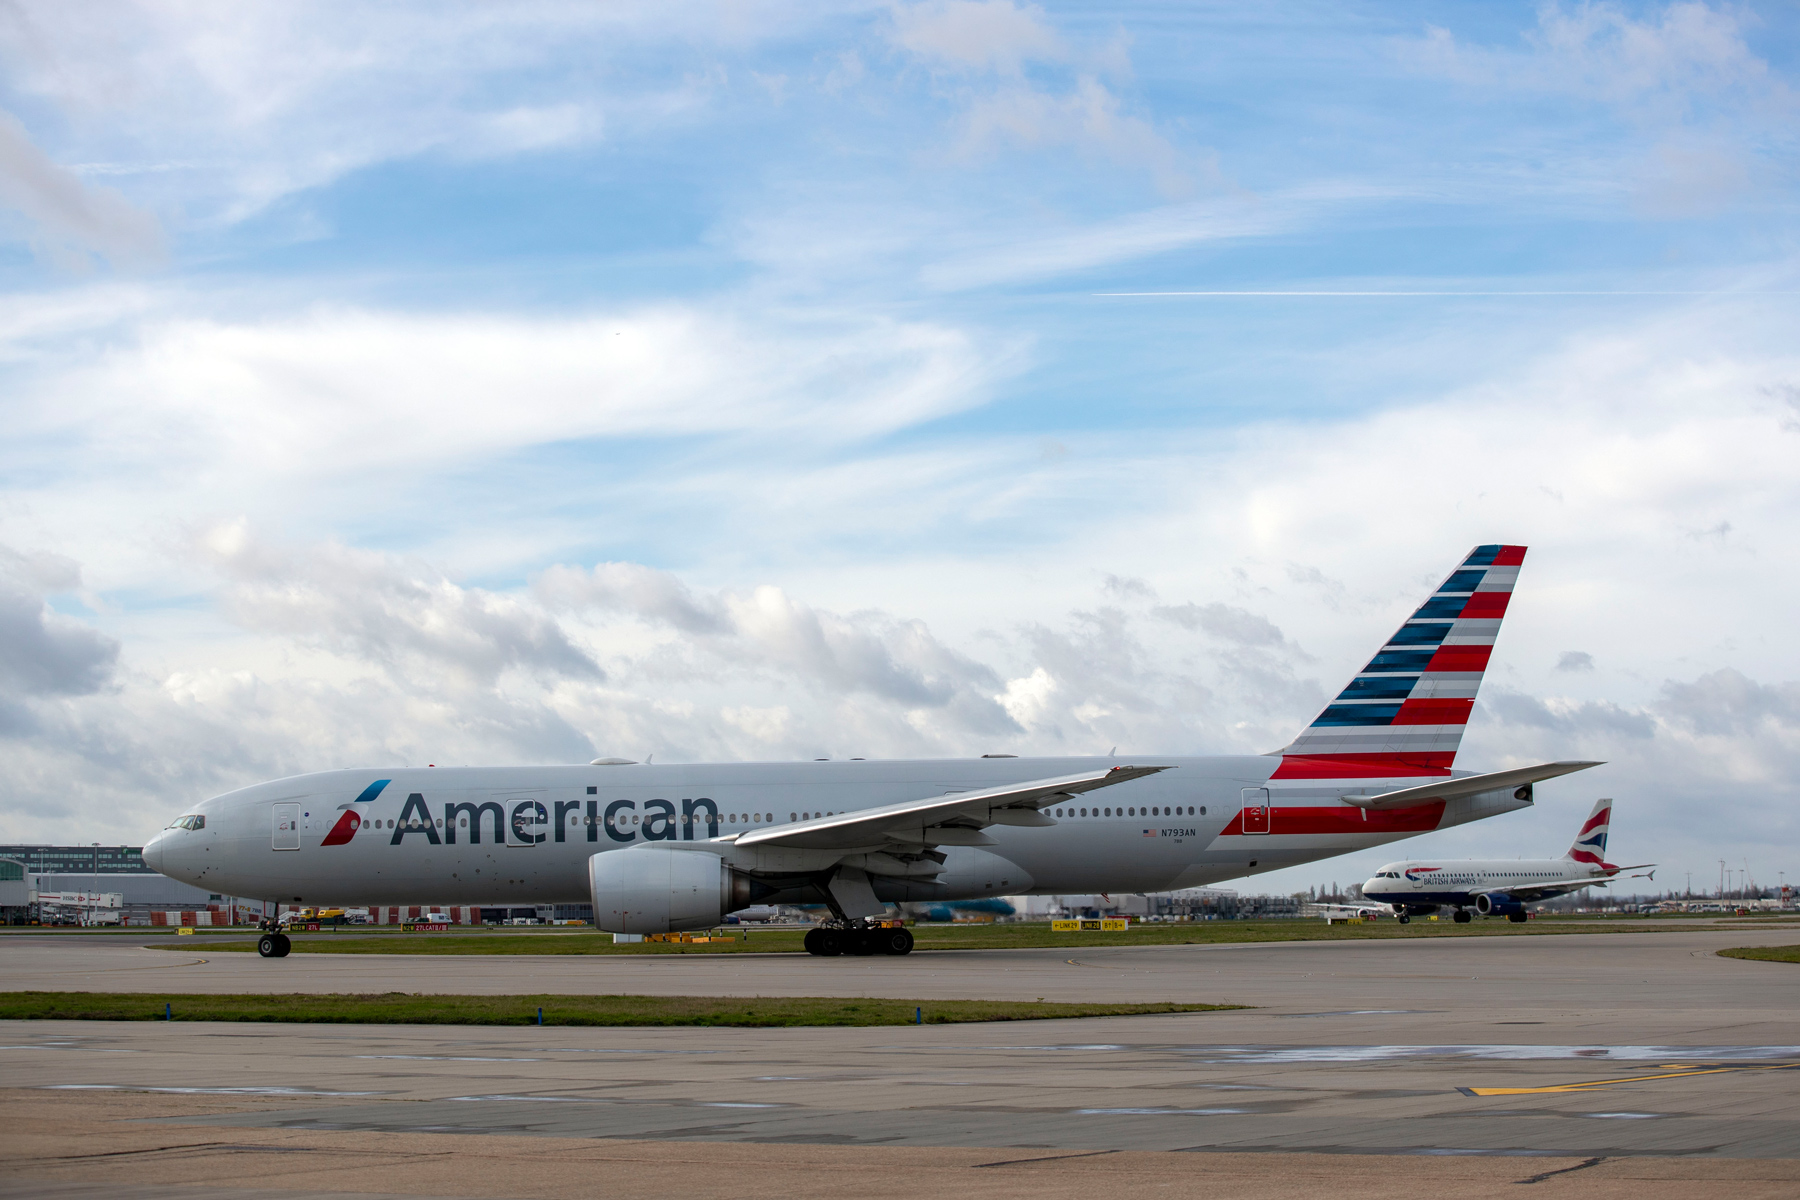 American Airlines plane taxis to the southern runway at Heathrow Airport